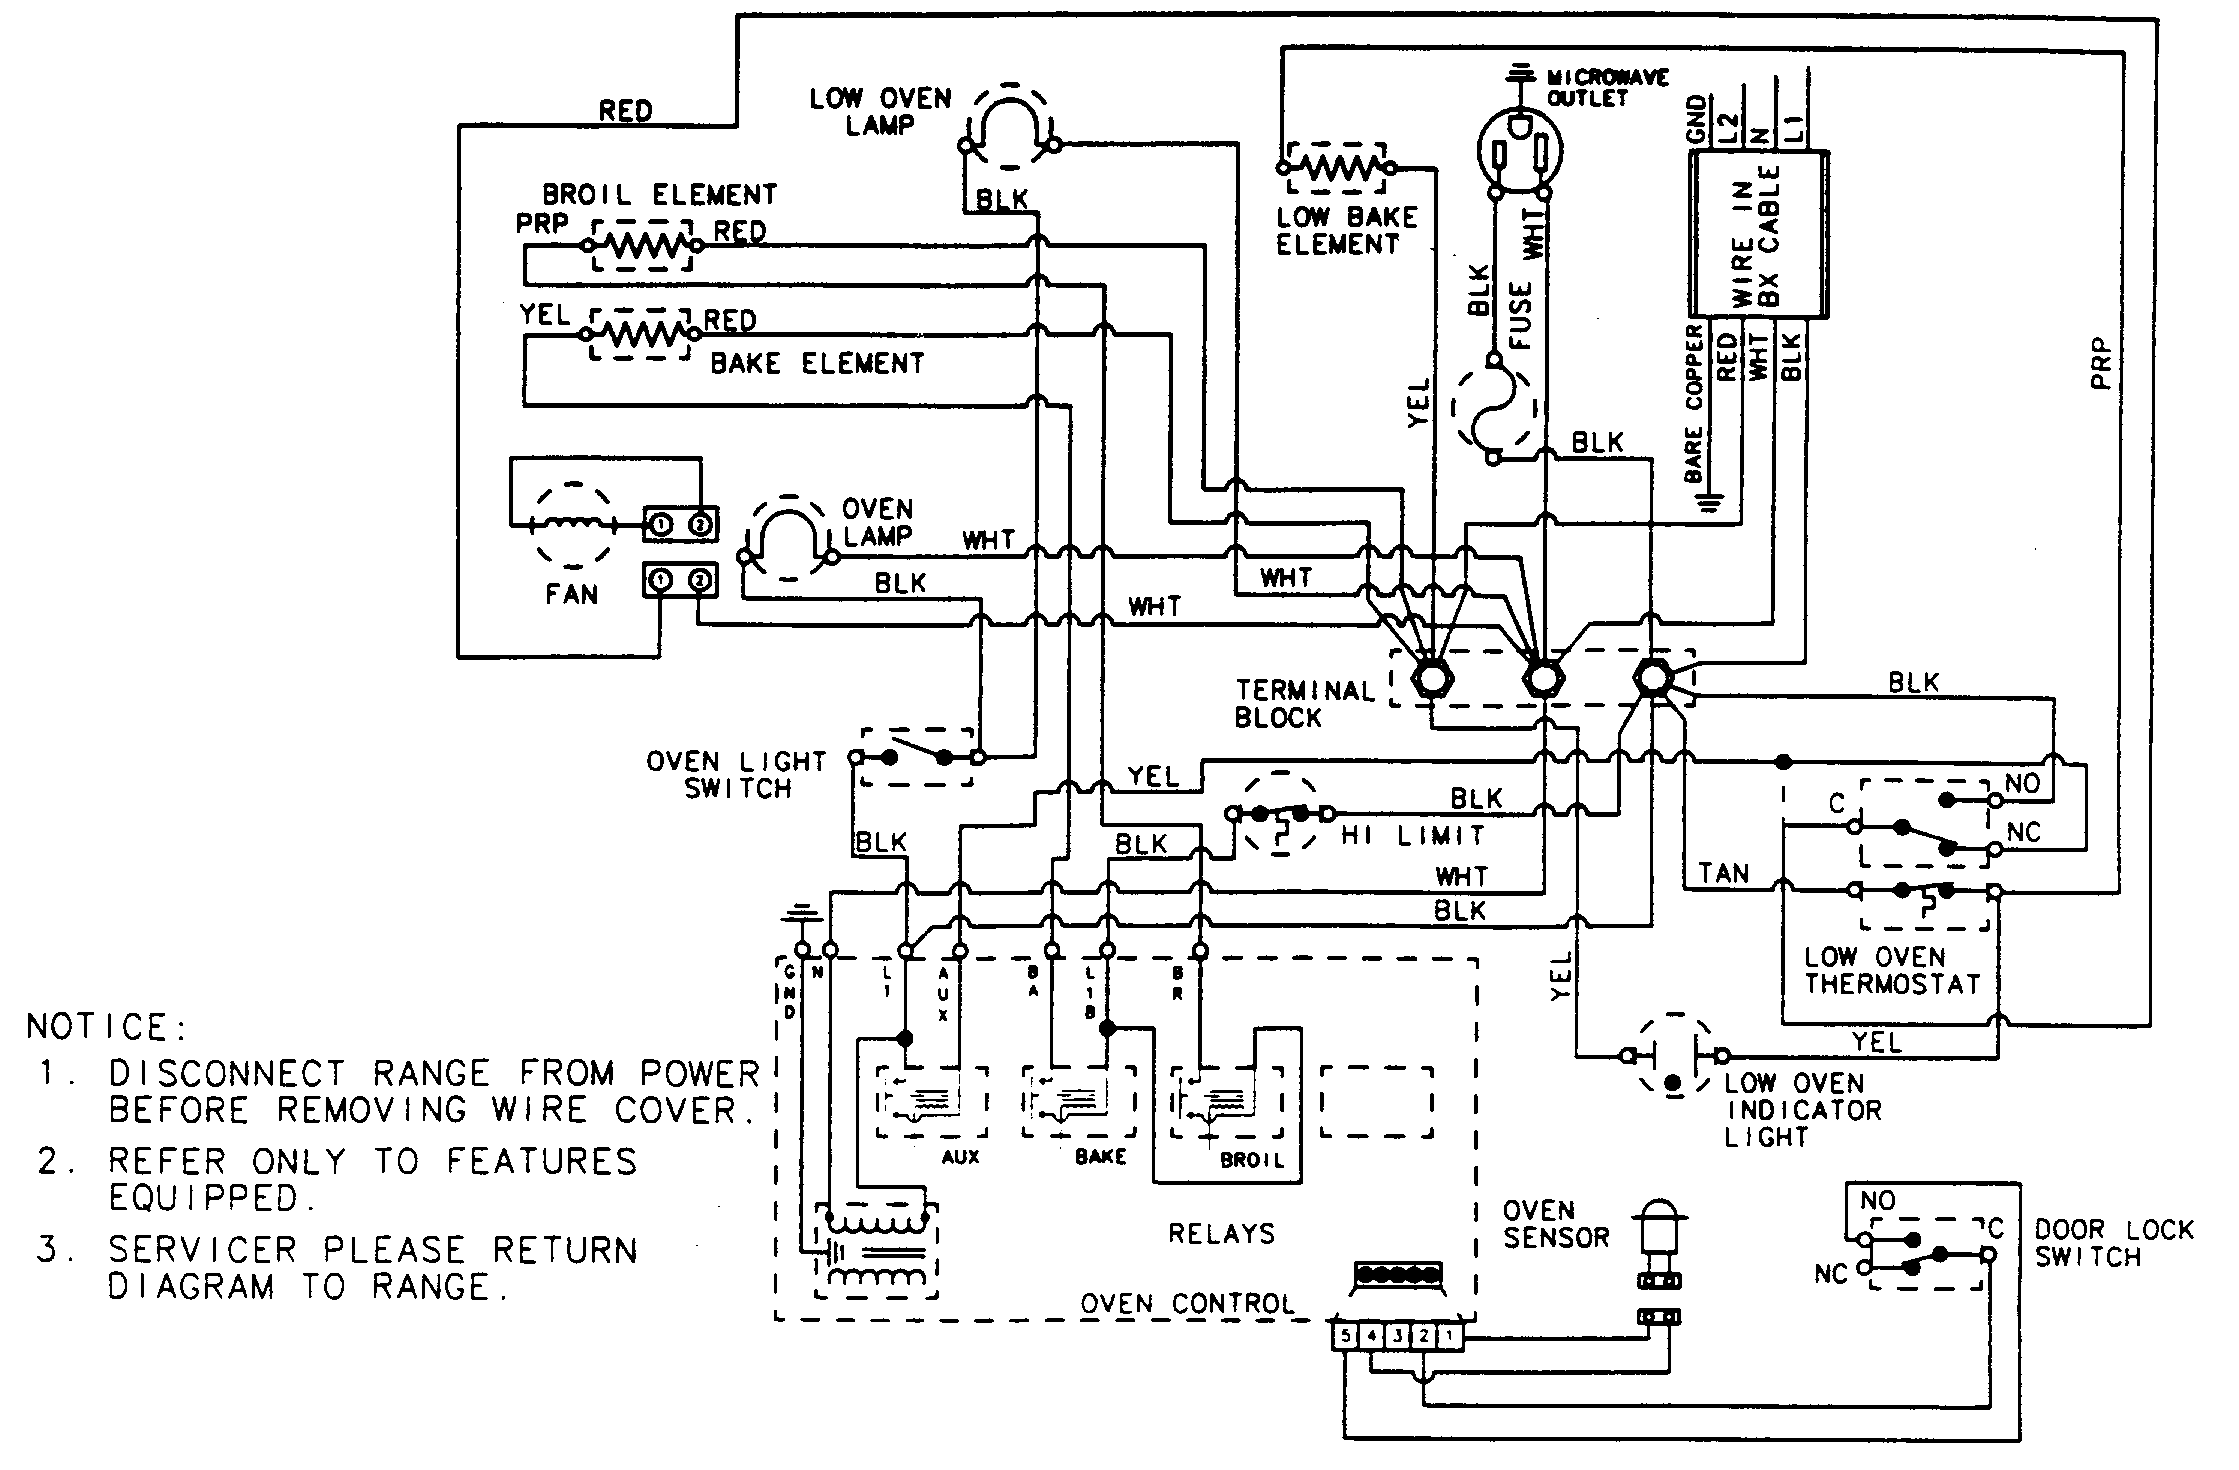 wiring diagram for electric range  u2013 the wiring diagram